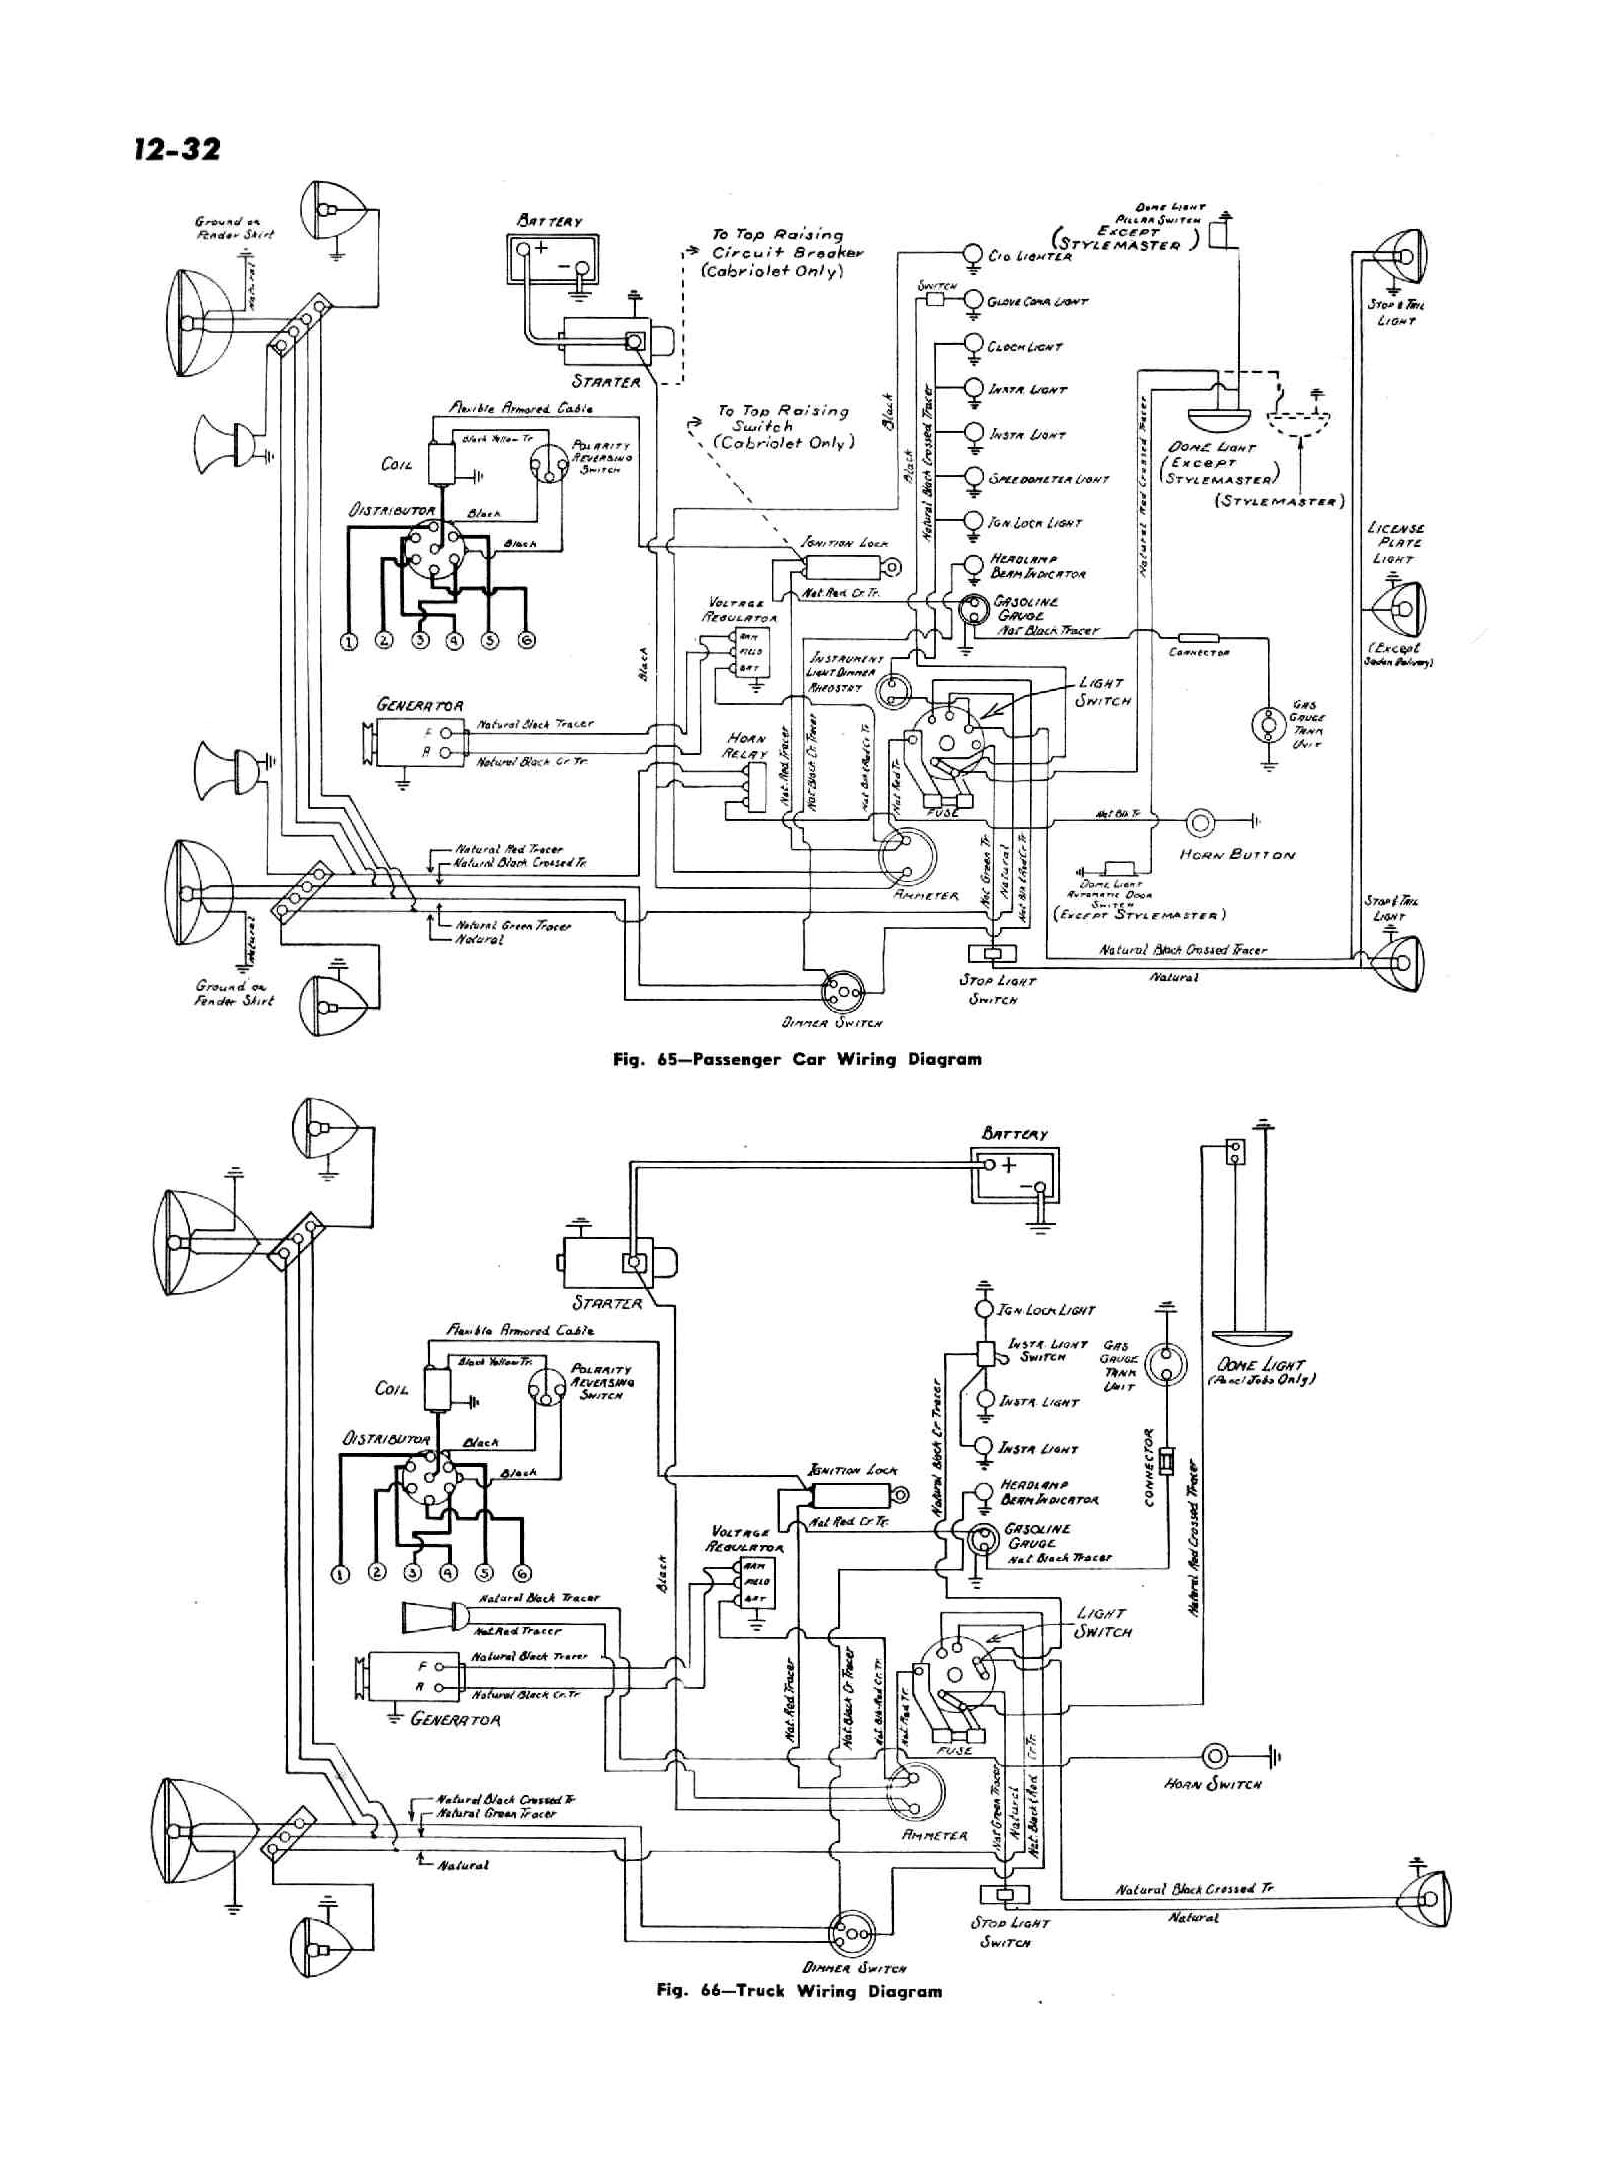 4247csm1232 apache wiring diagram schematic diagram \u2022 wiring diagram database  at suagrazia.org